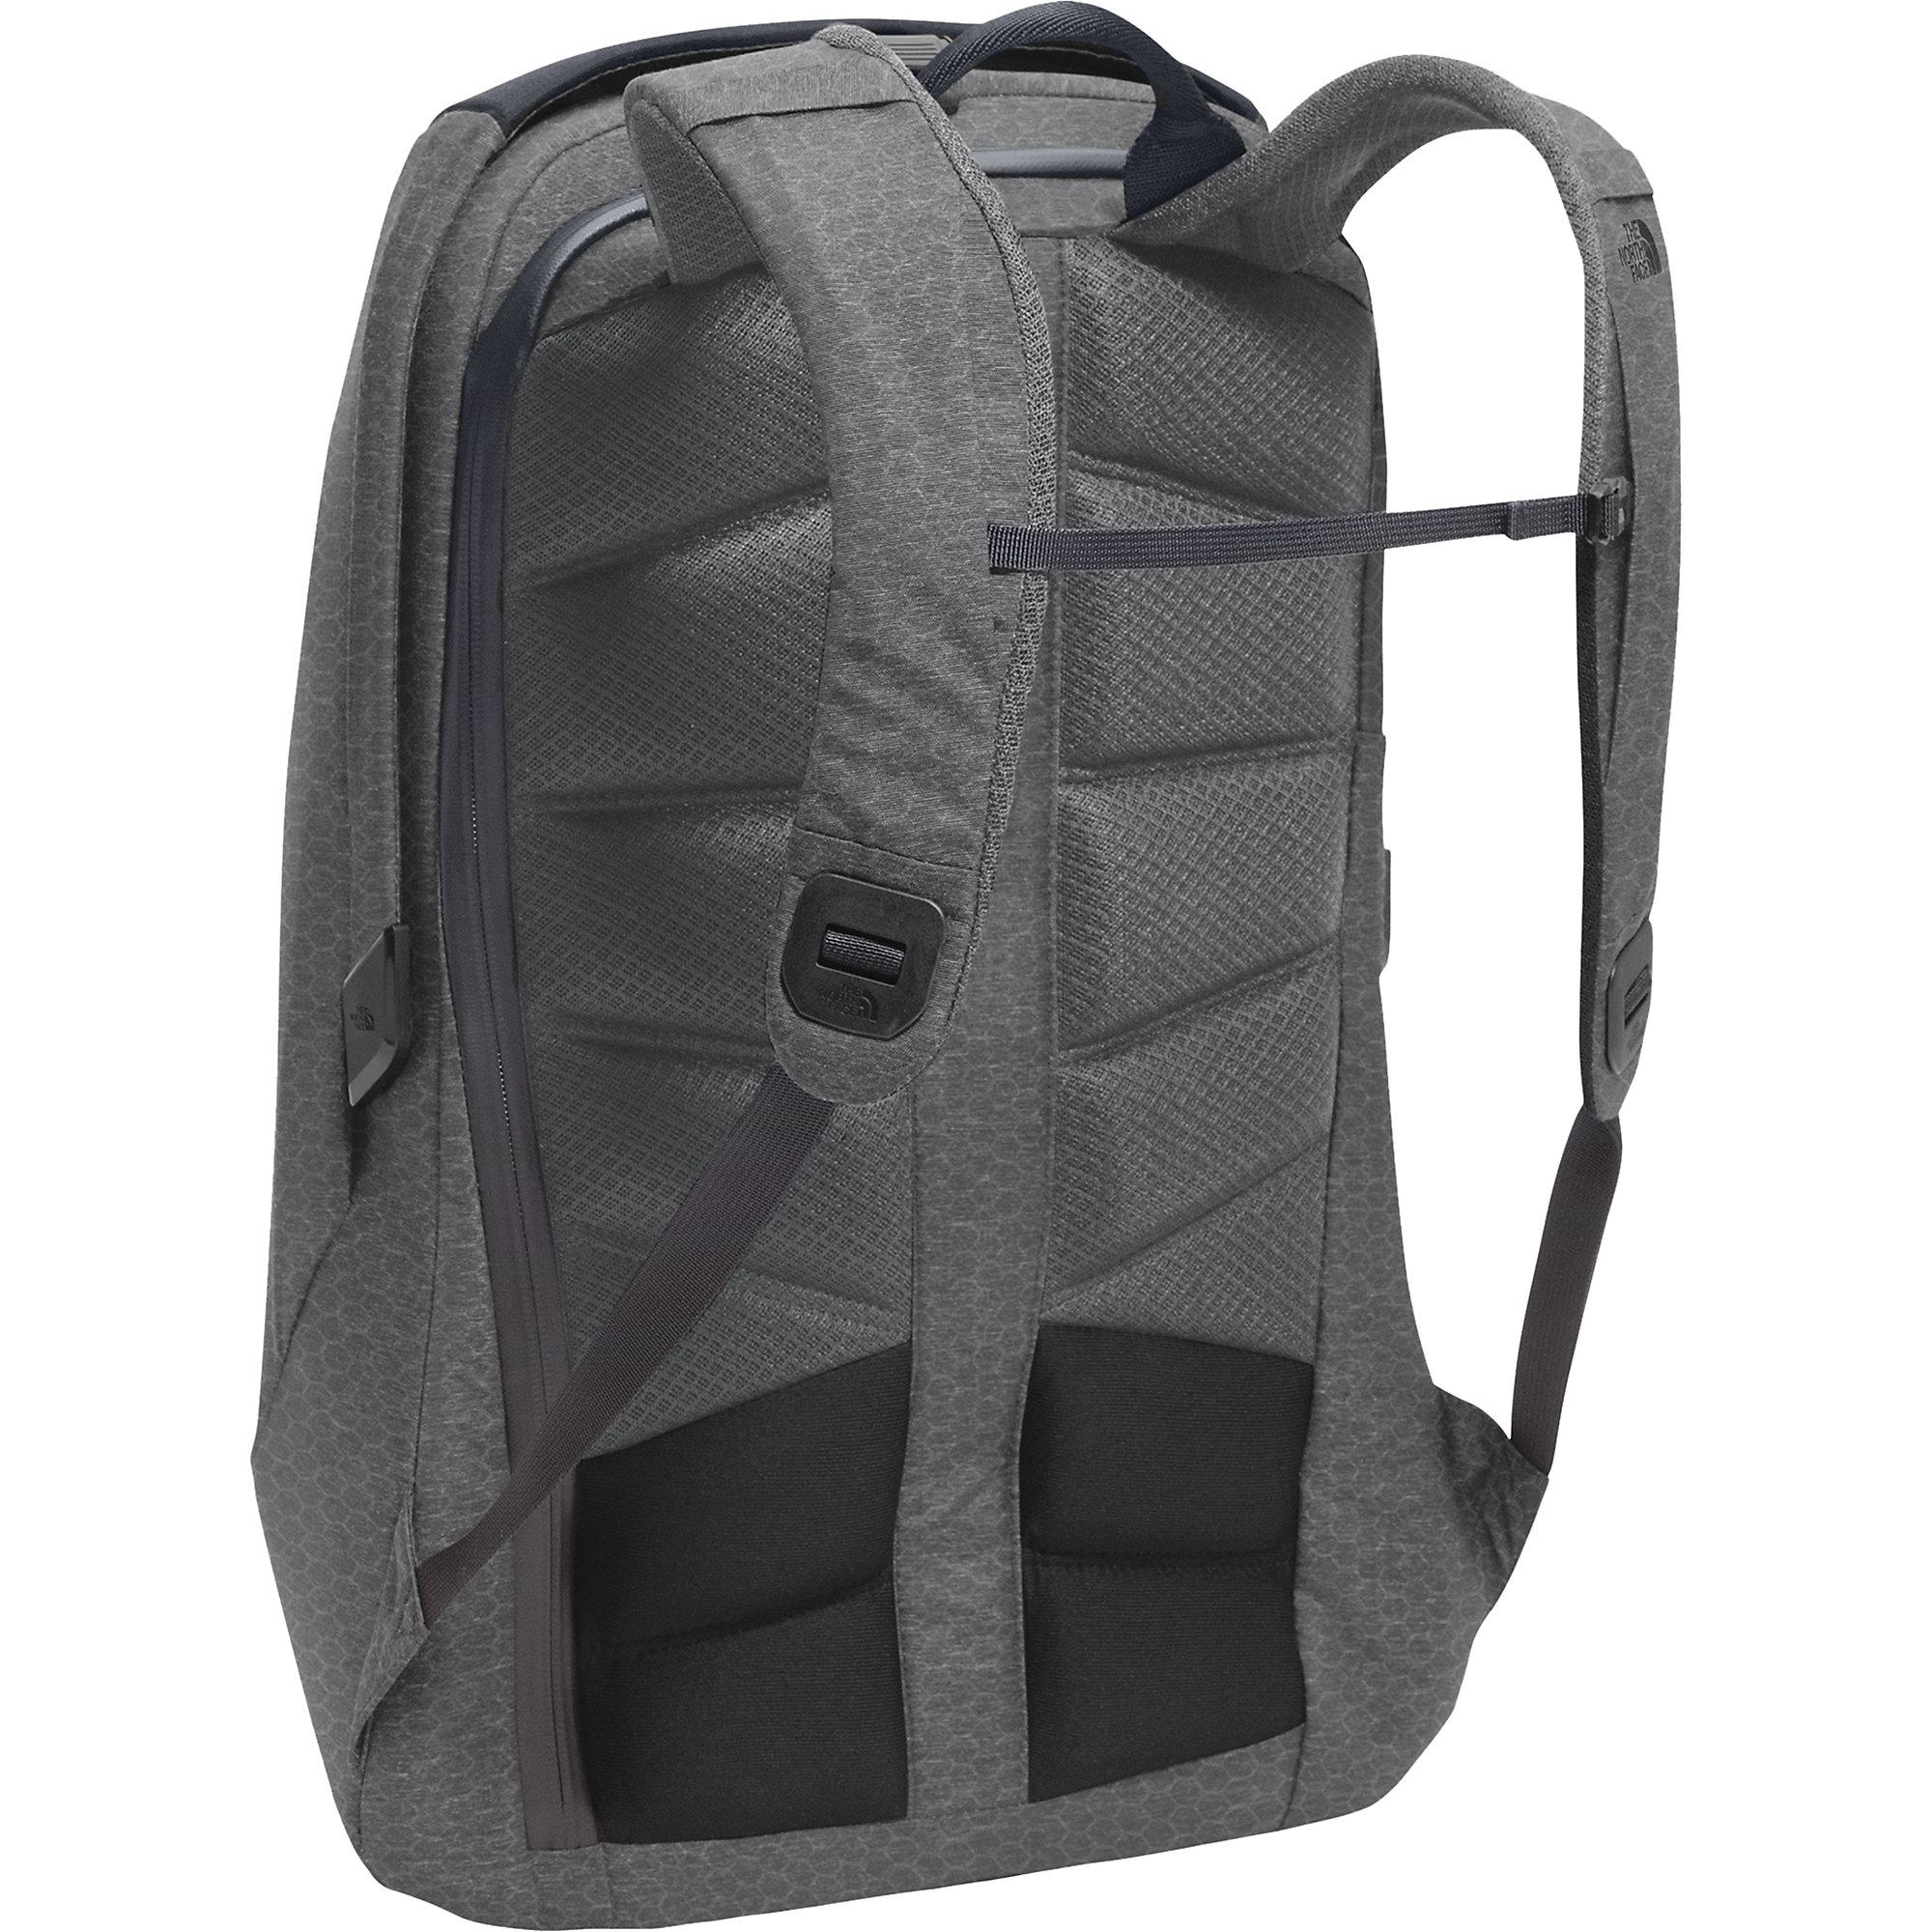 bfe7493a3 The North Face Access Pack in Gray - Lyst